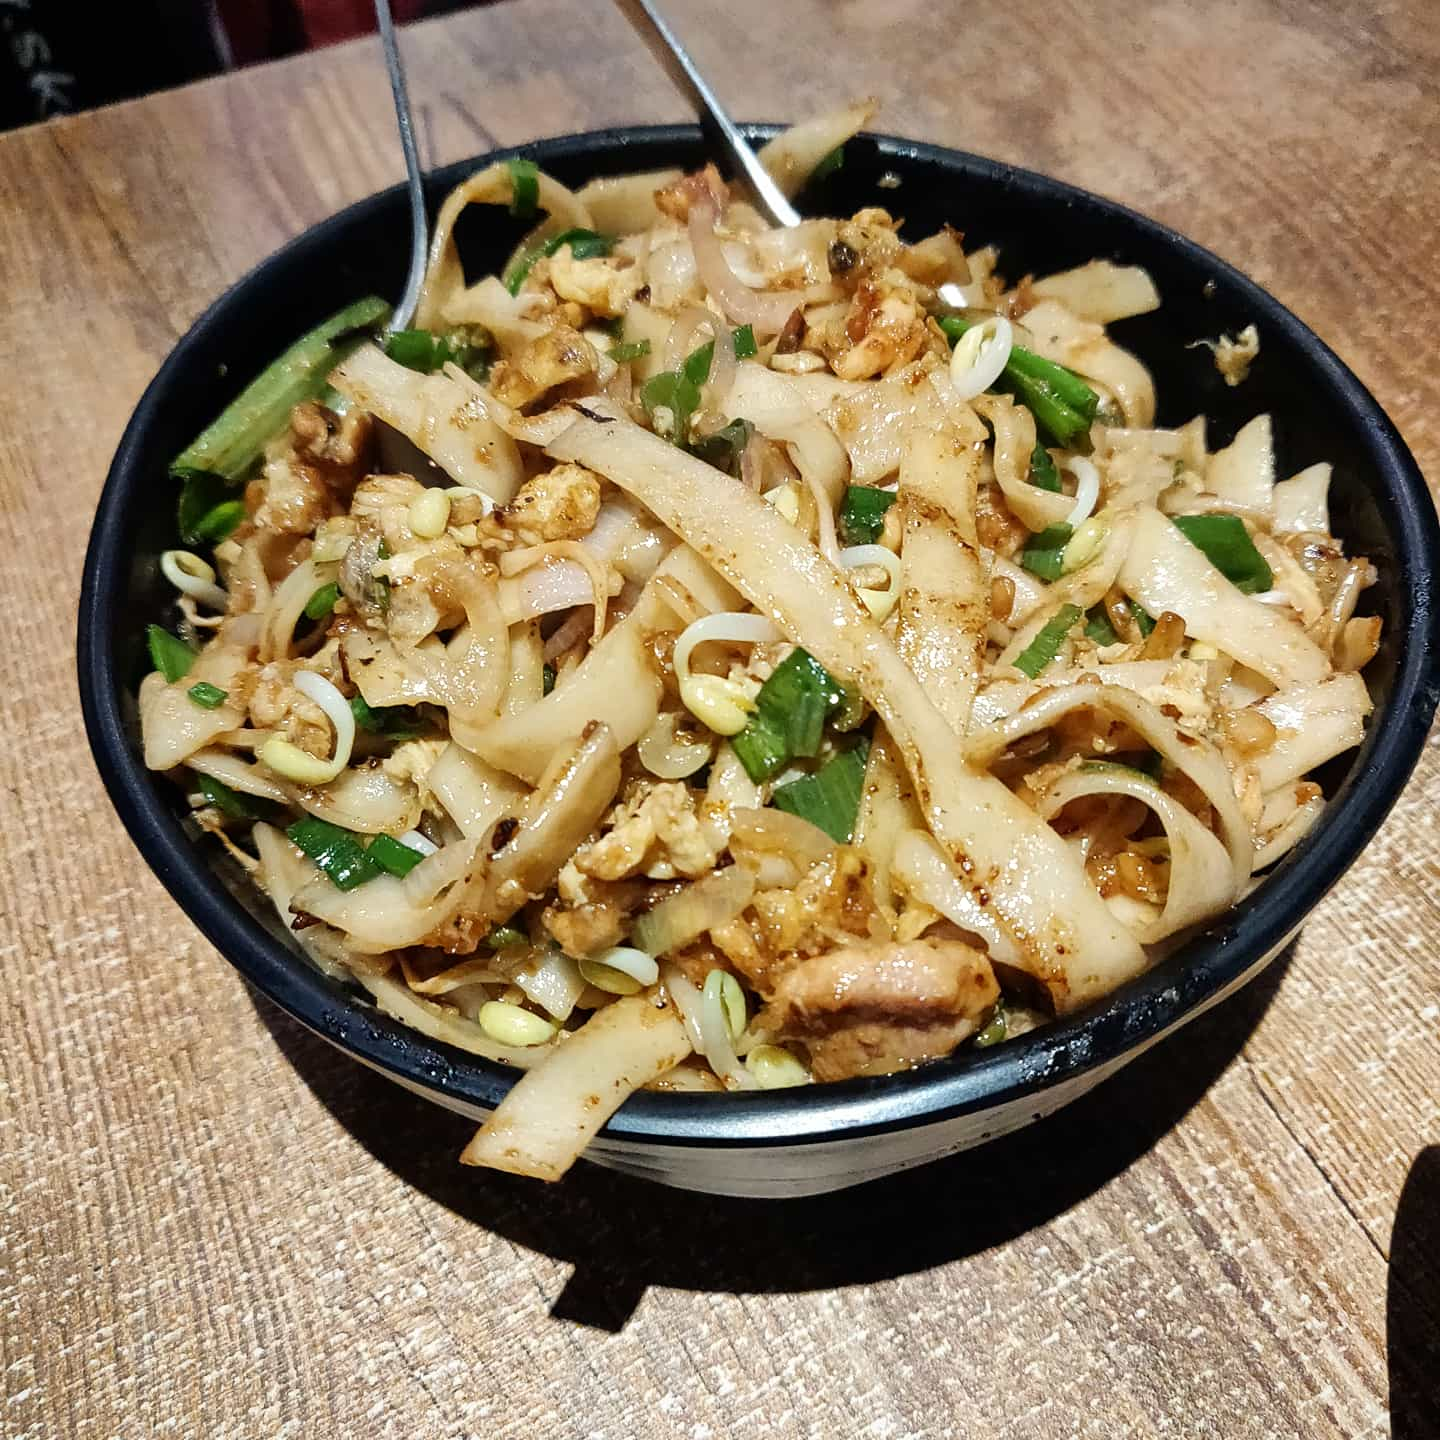 Malasian Flat Noodles at our food blog